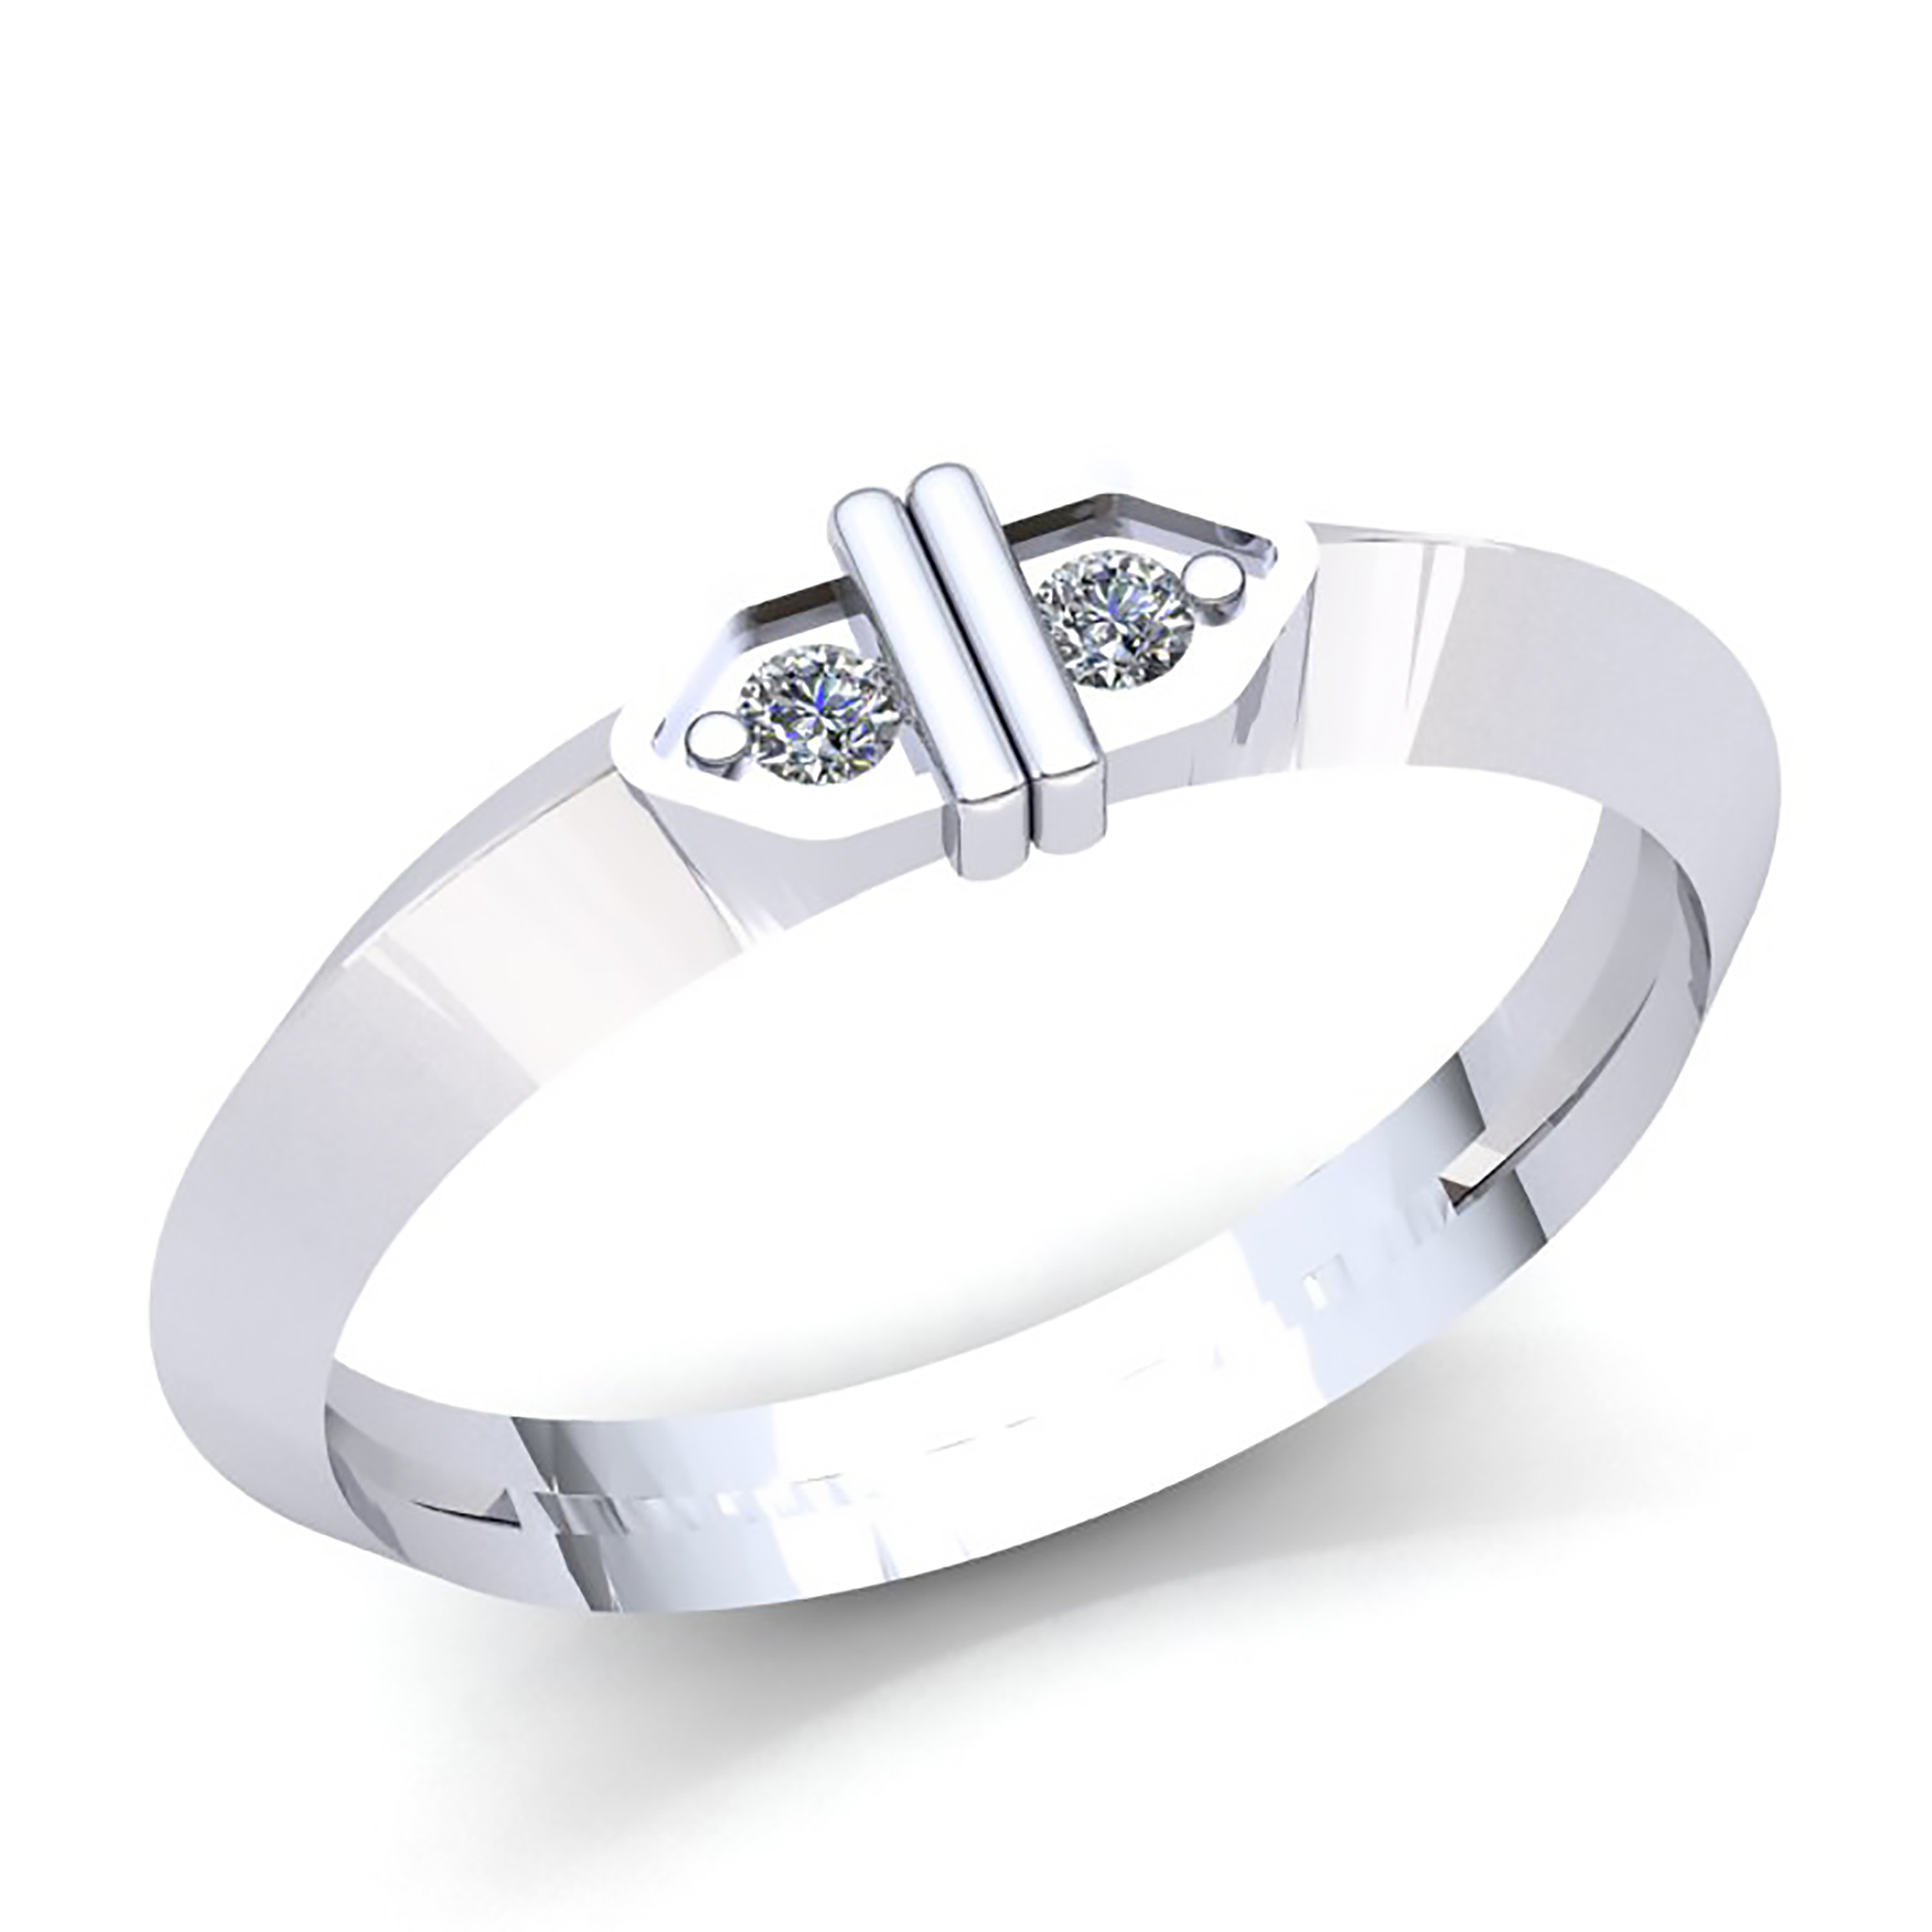 Details about 1/3ctw Round Cut Diamond Mens 2Stone Knife Edge Wedding Band  Ring 10K Gold